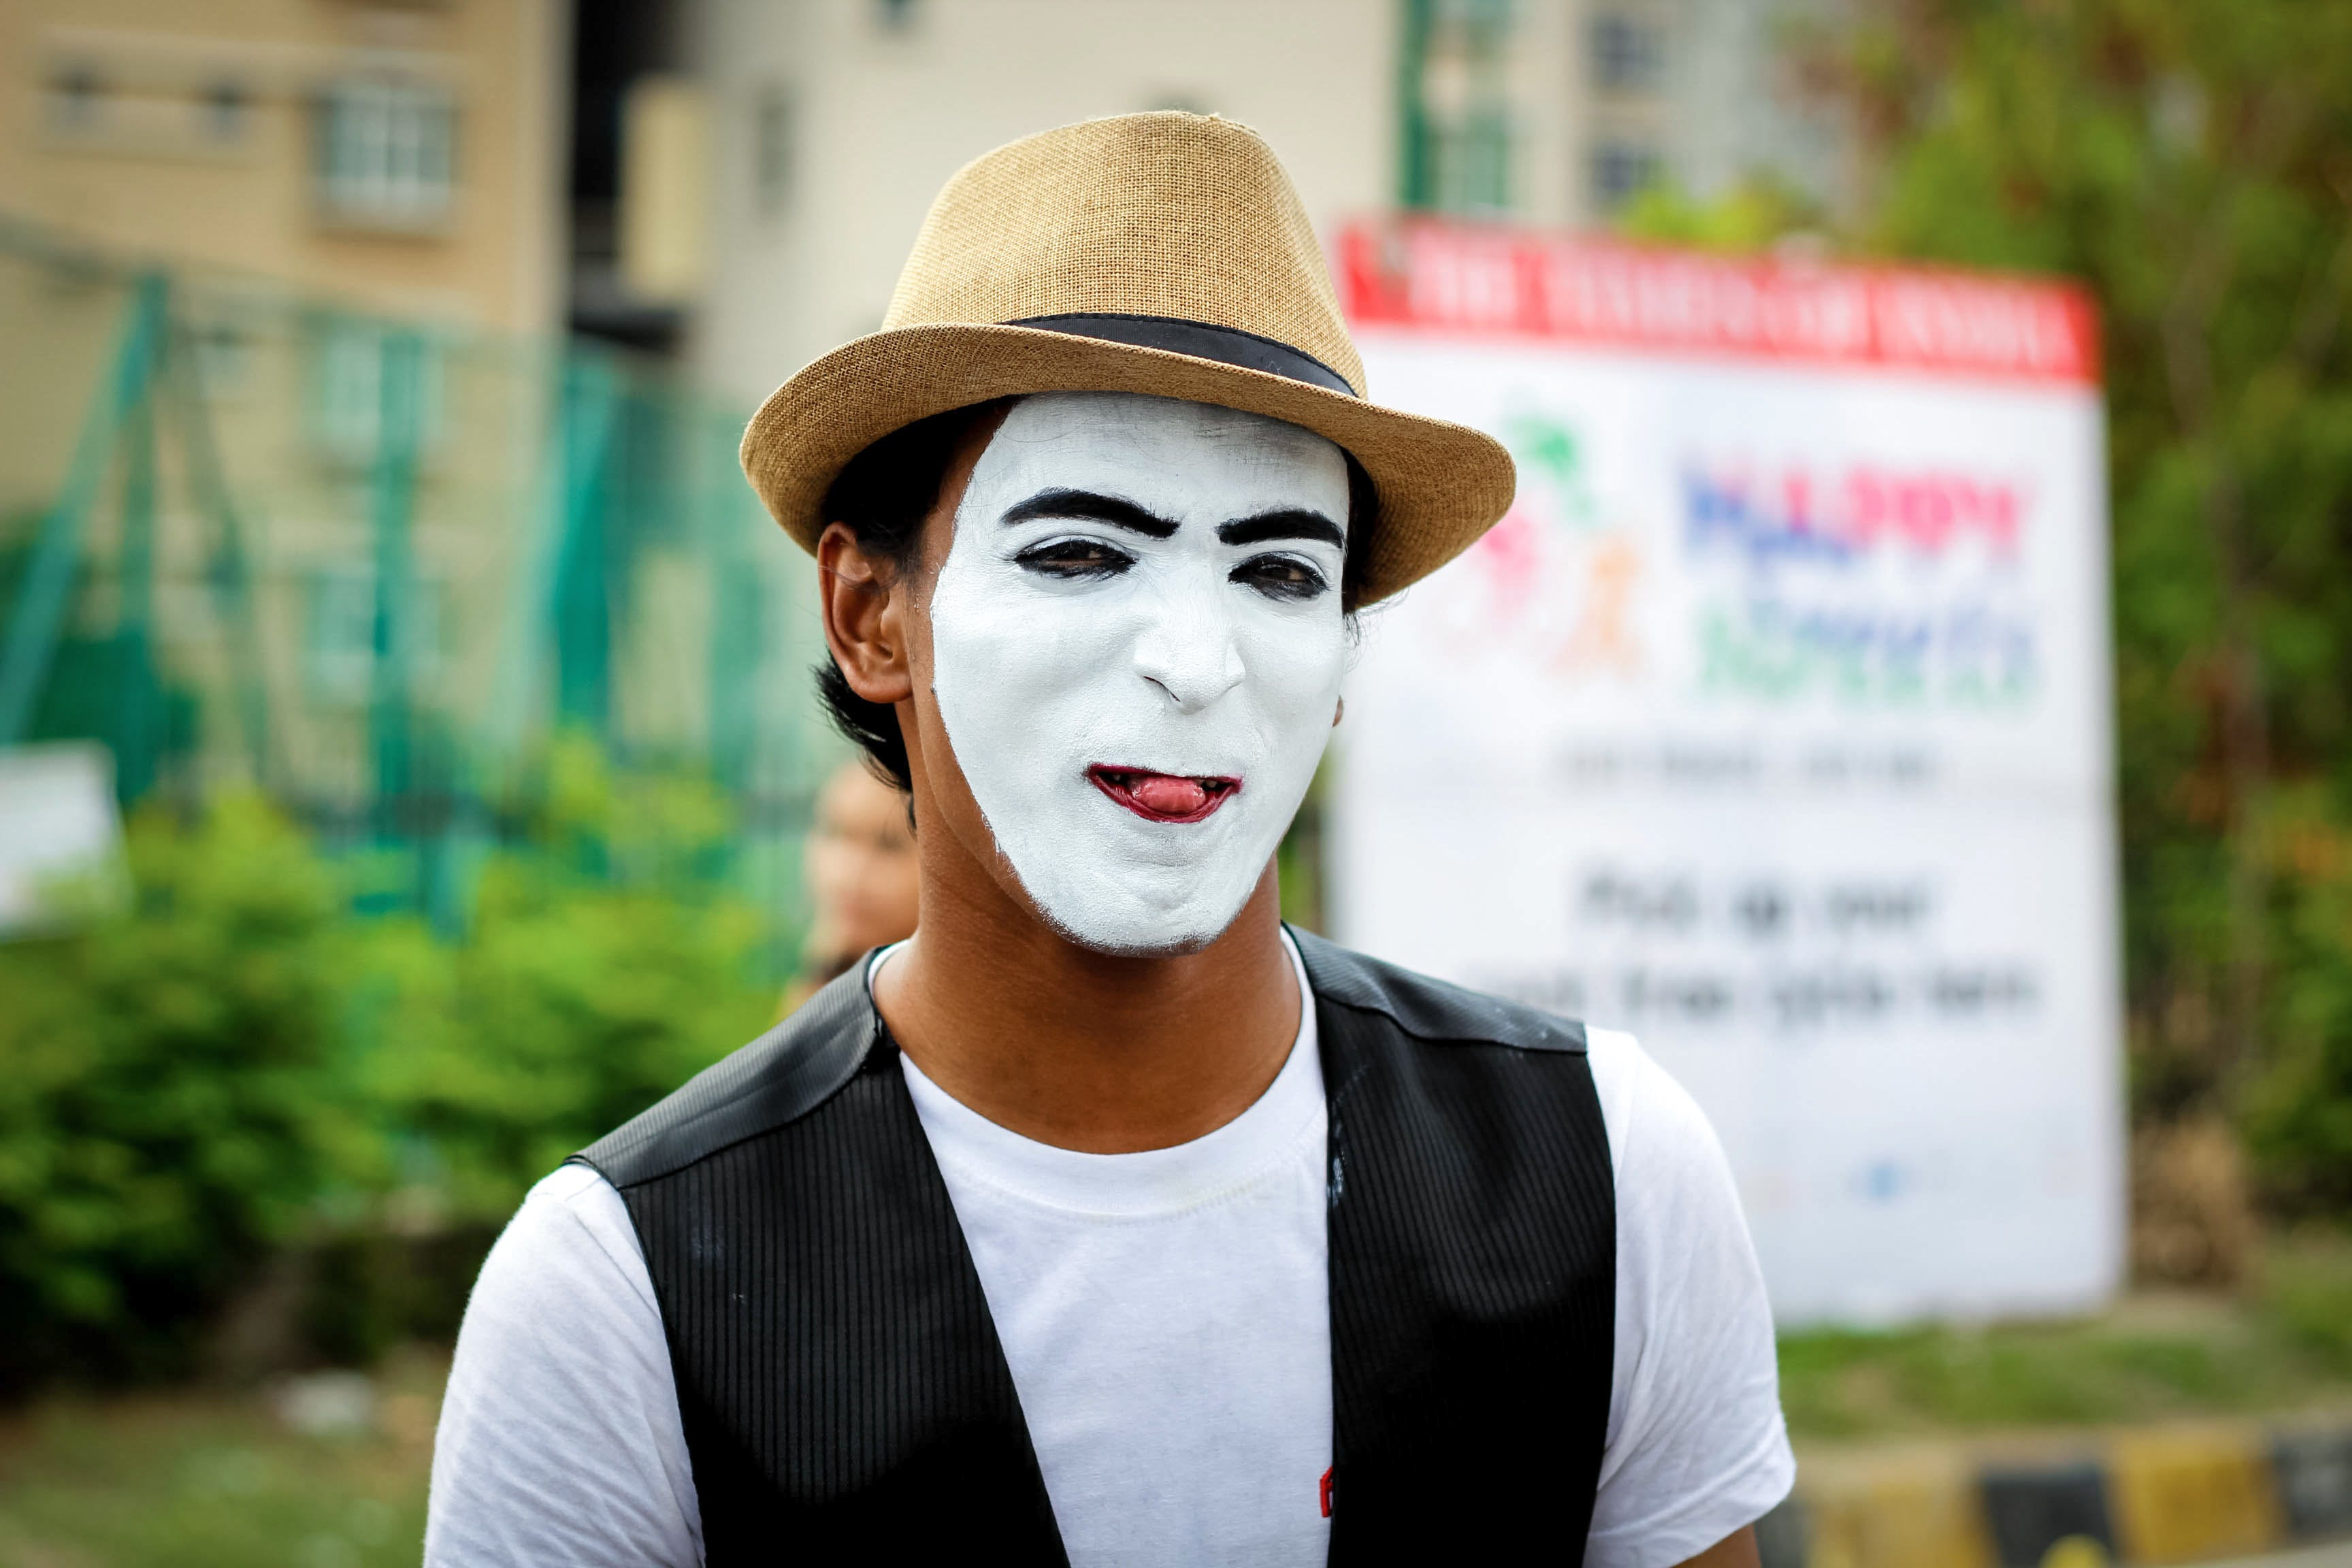 Selective Focus Photography of Man Wearing White Mask and Brown Fedora Hat